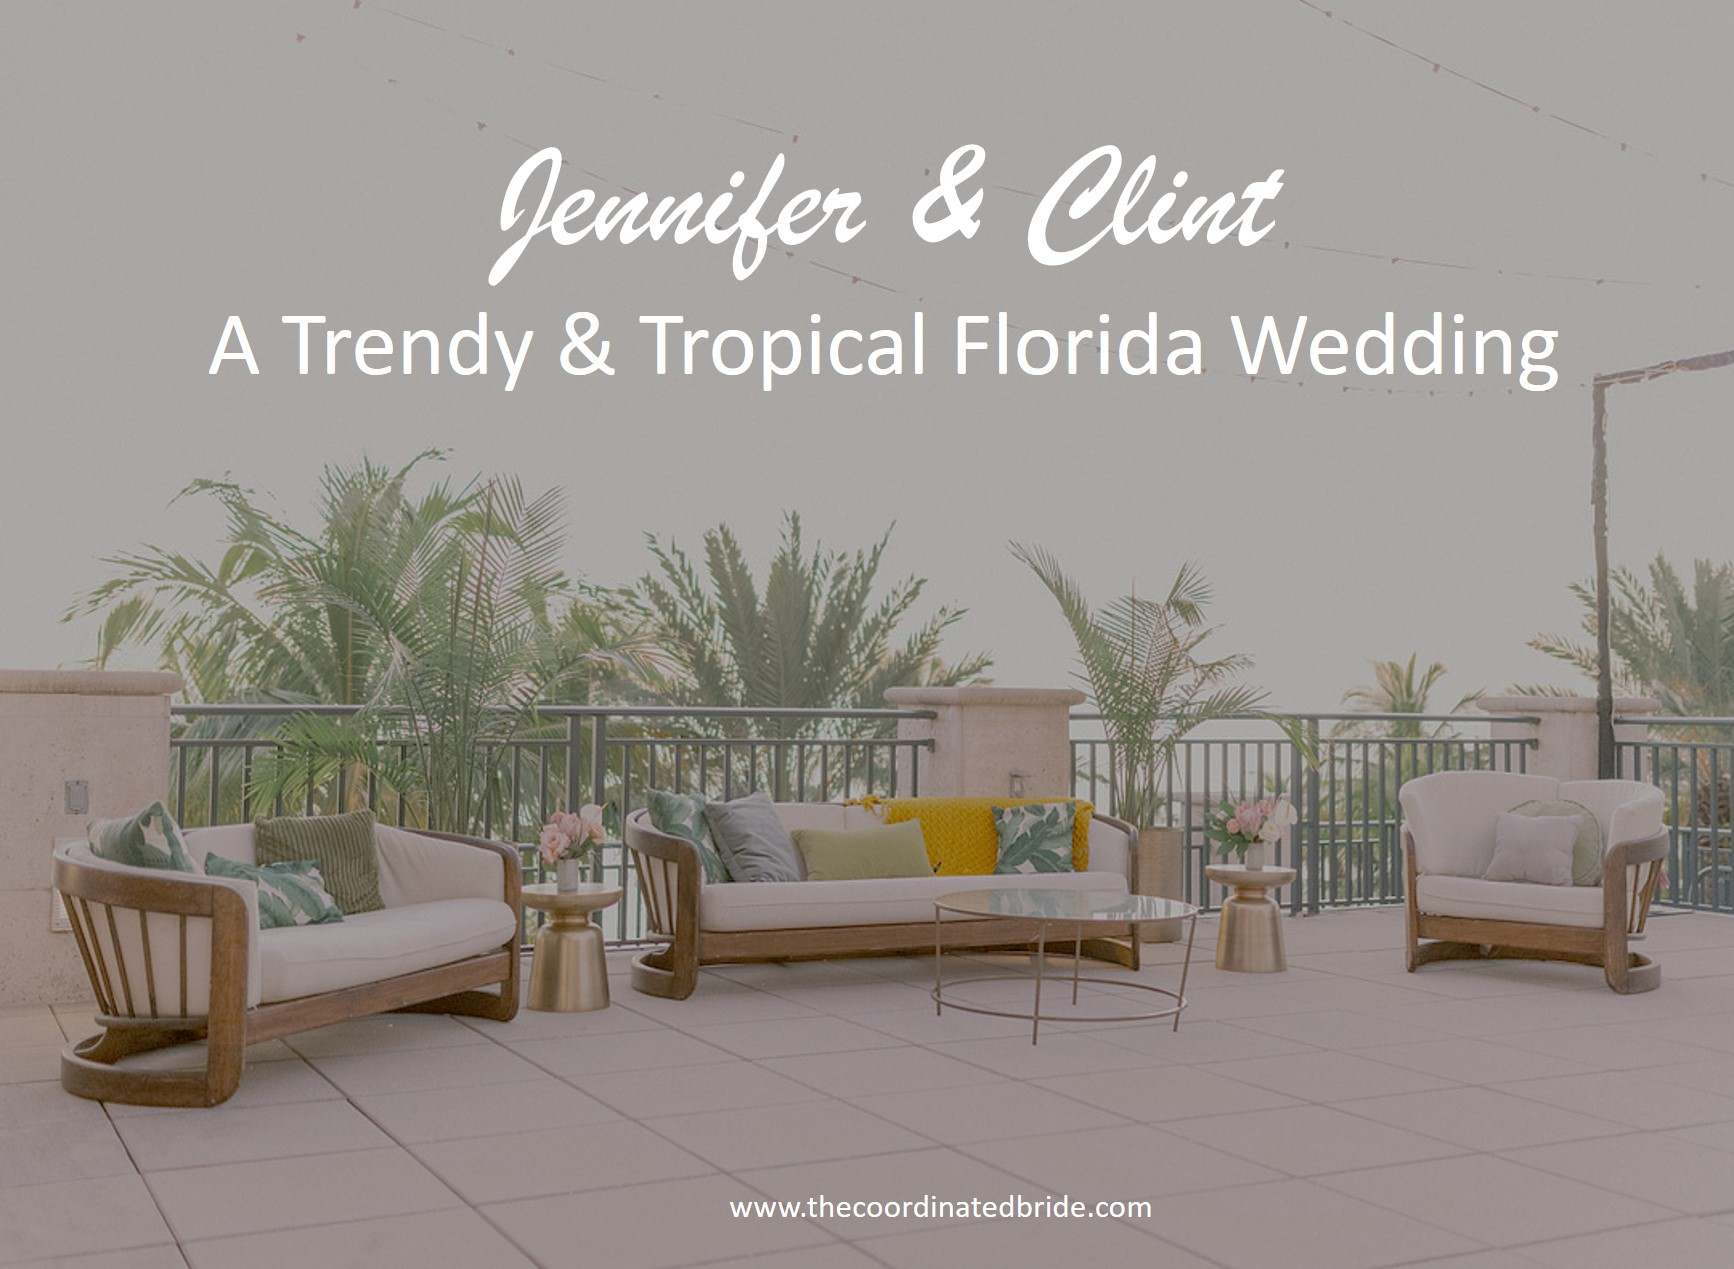 A Trendy & Tropical Florida Wedding, Jennifer & Clint